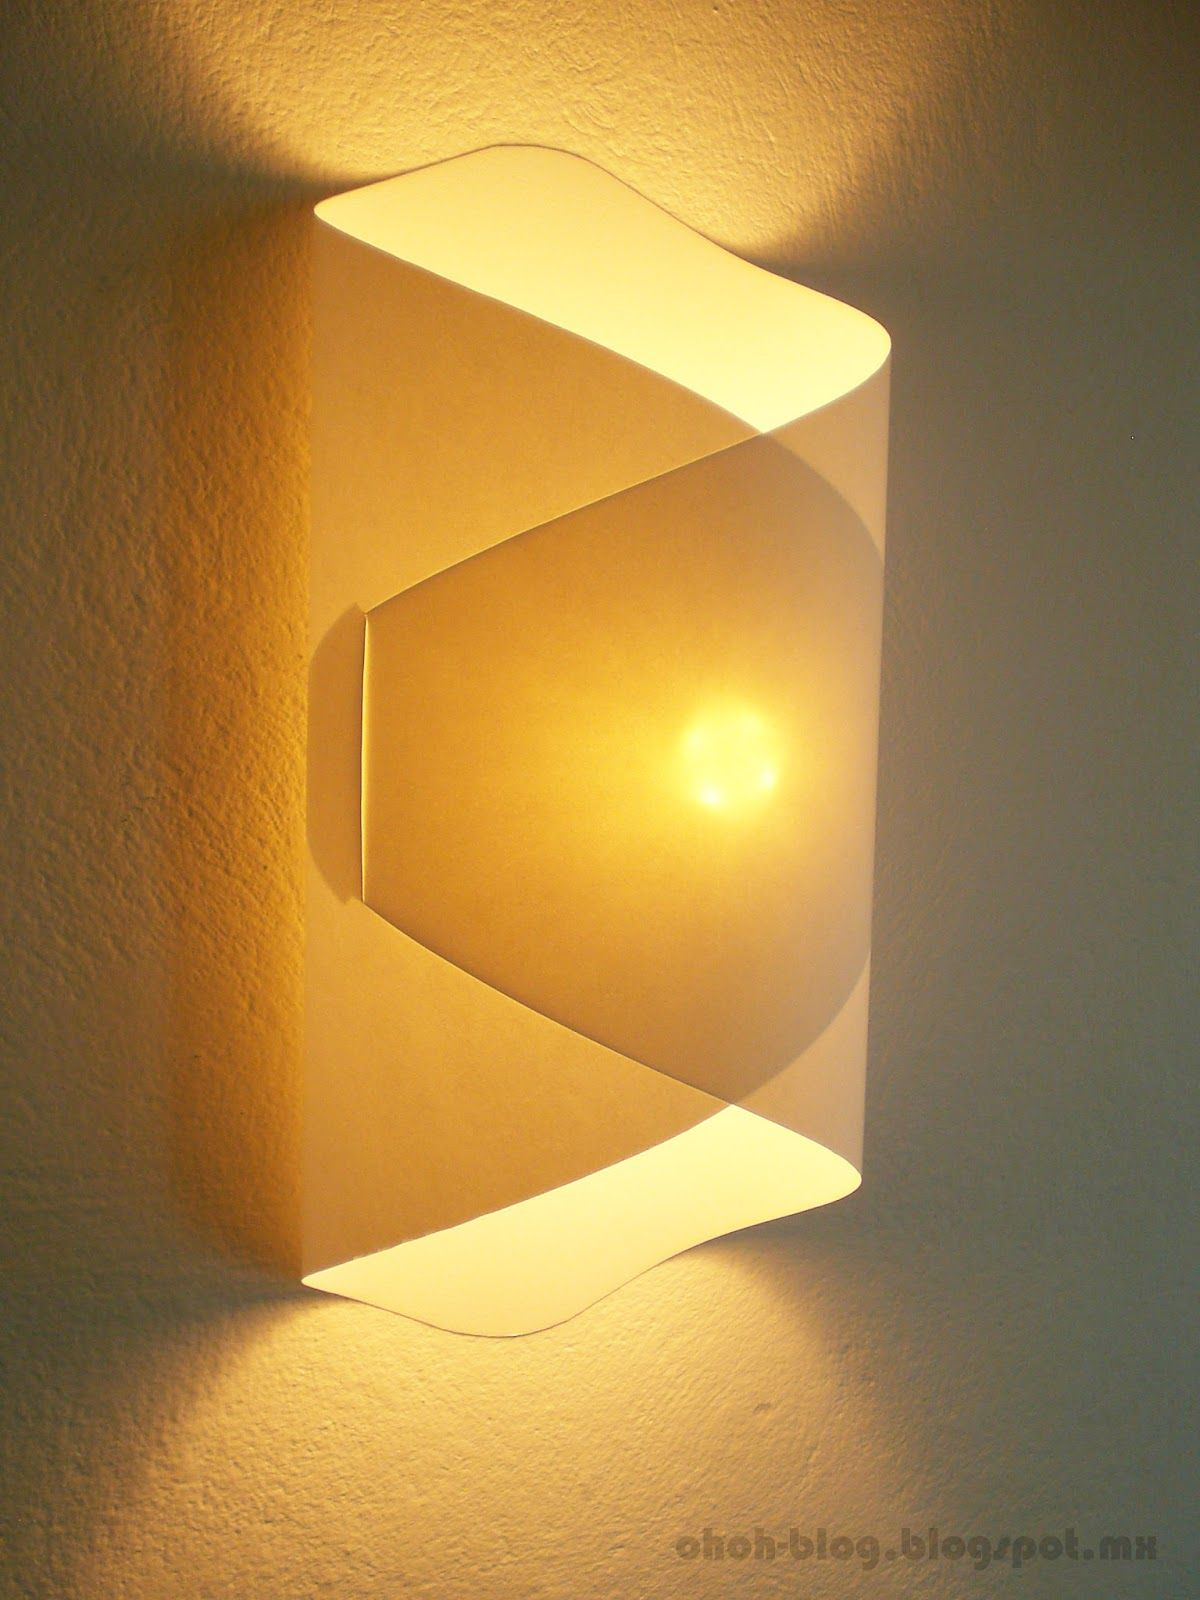 Ohoh Blog: DIY paper lamp | Light Design | Pinterest | Paper lamps ...